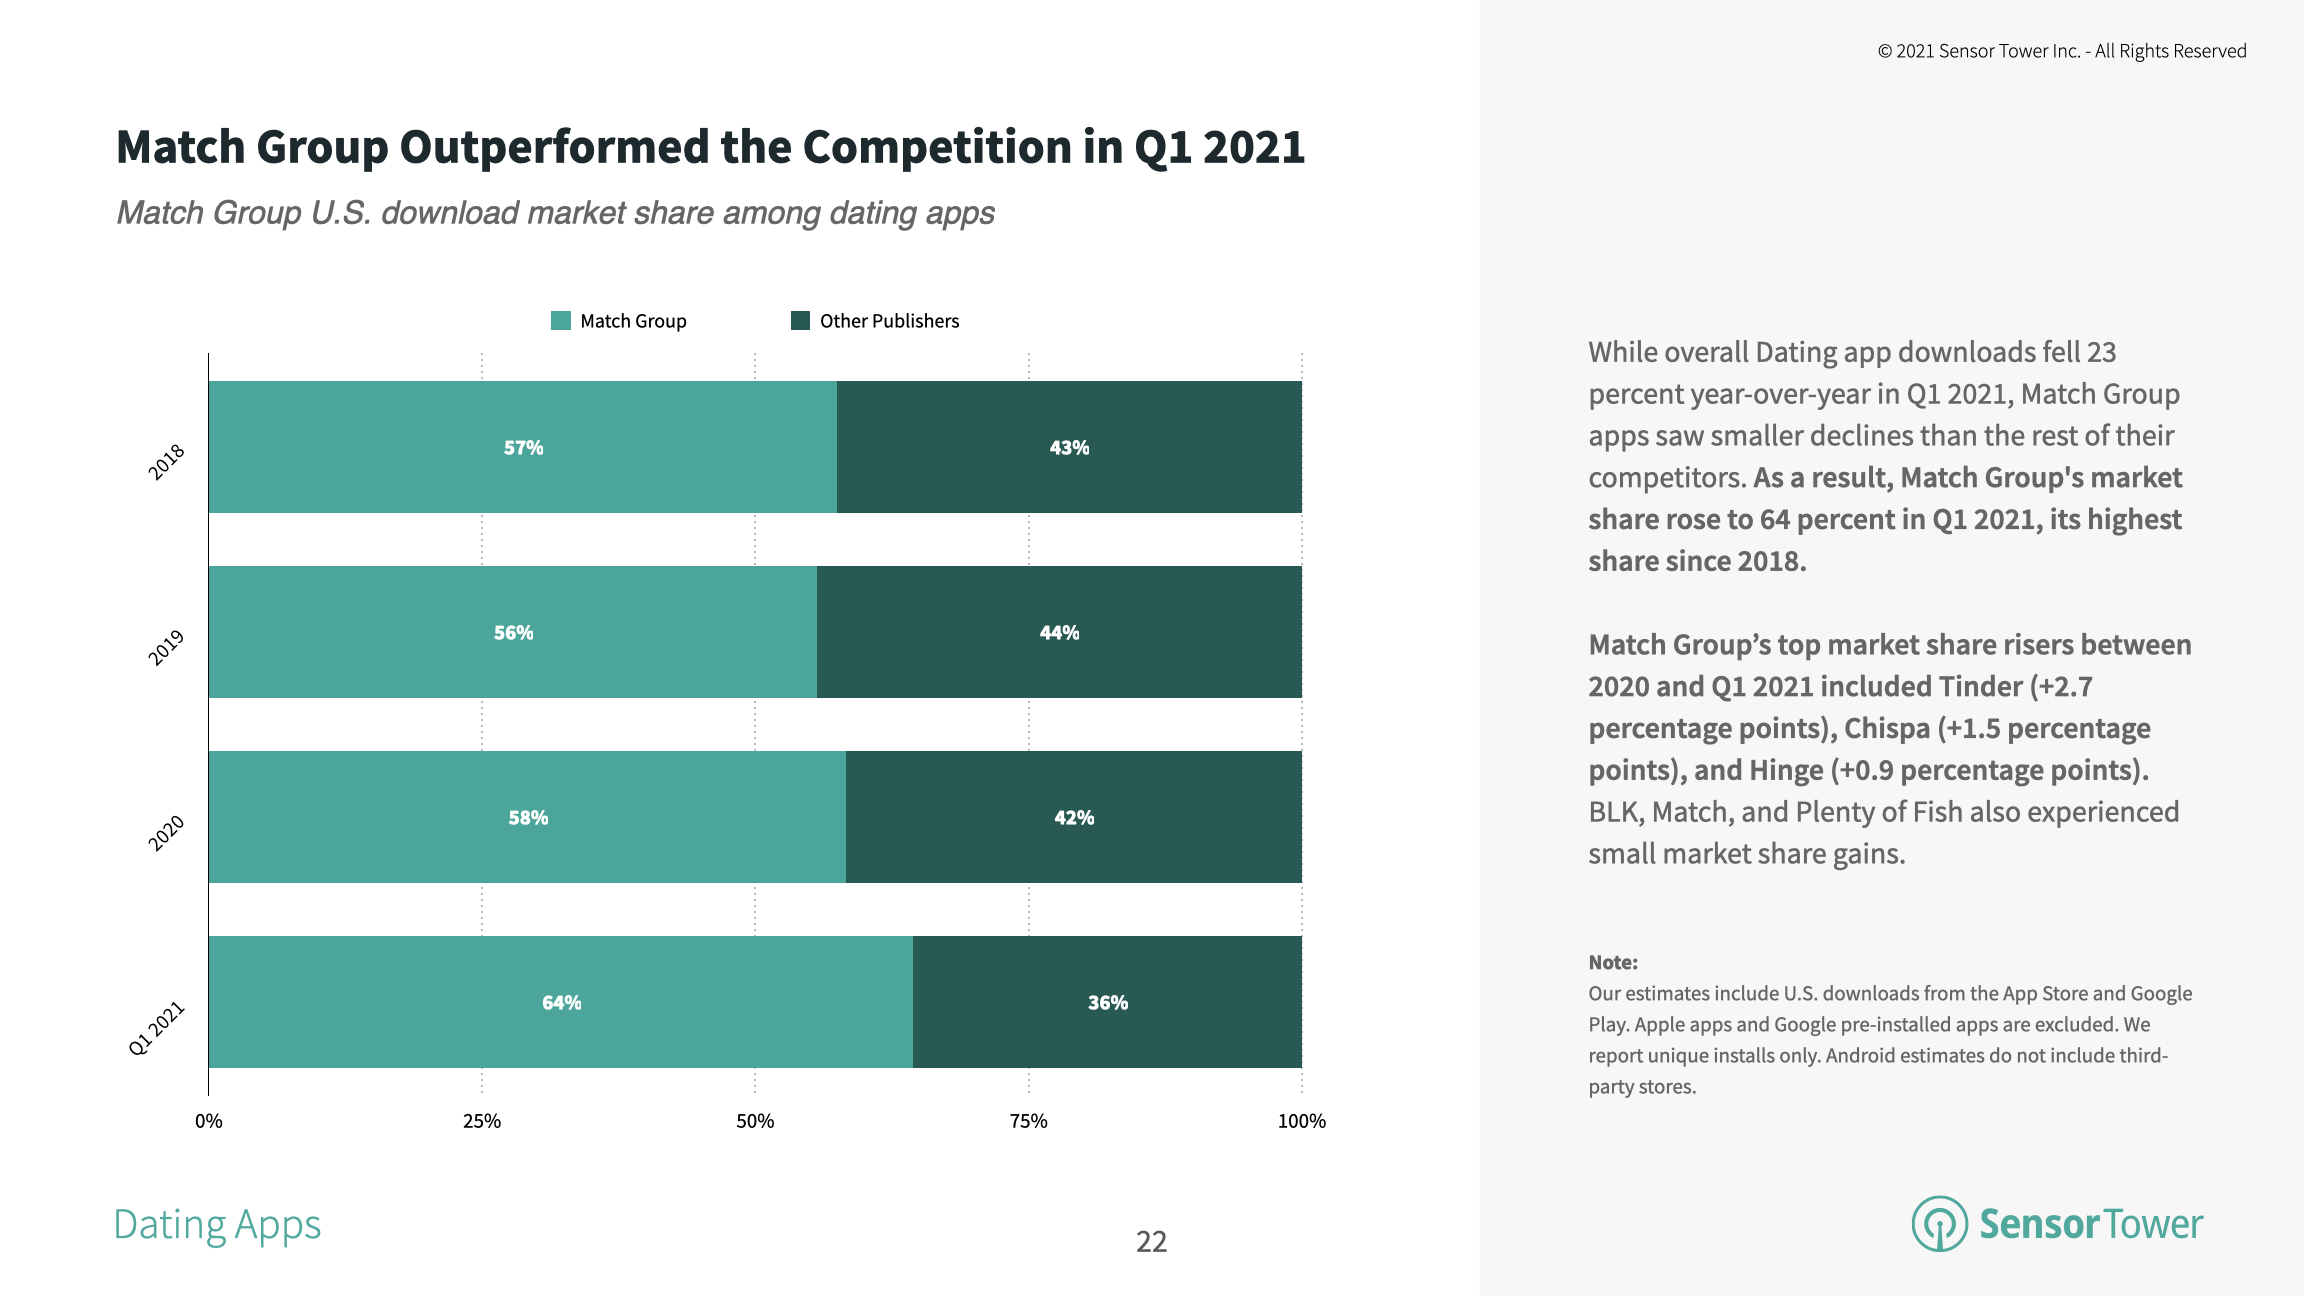 Match Group's applications continue to outperform their competitors in terms of adoption in the United States.